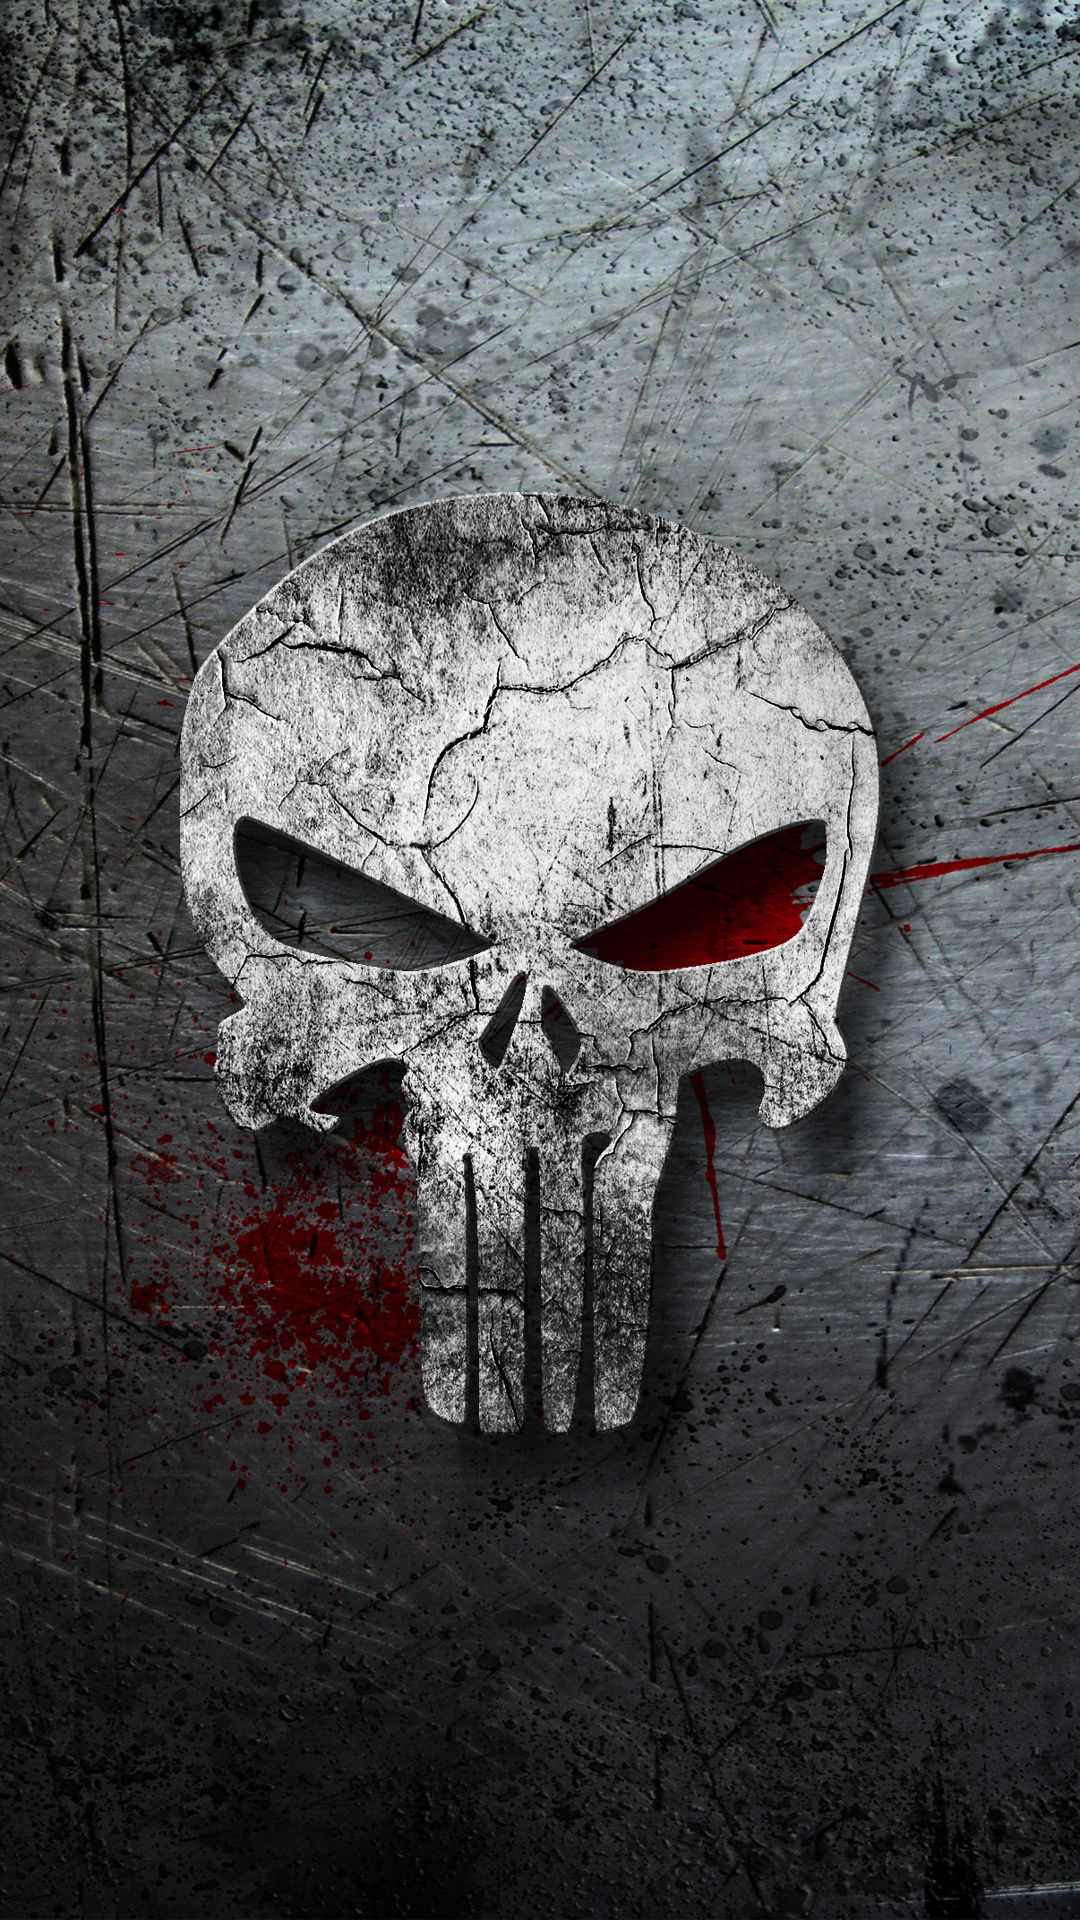 Punisher Mobile Hd Wallpaper Superhero Wallpaper Android Wallpaper Skull Wallpaper